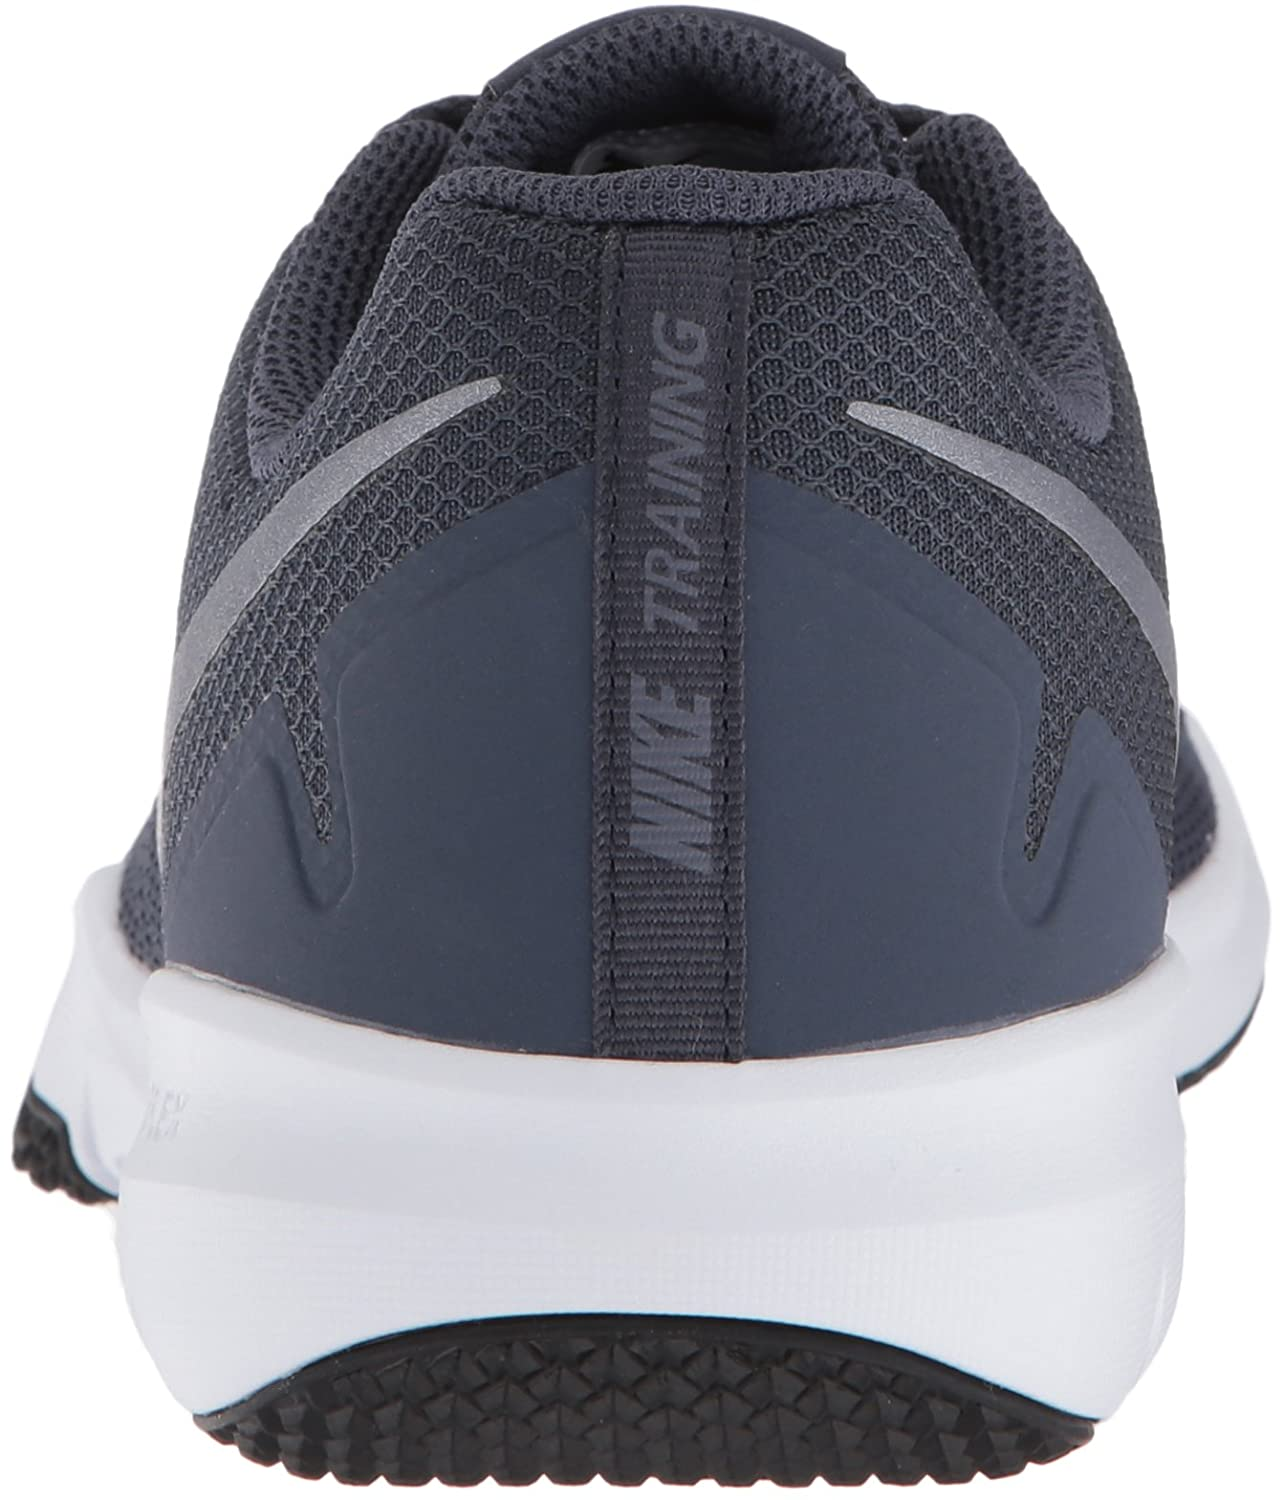 a9644deb476b NIKE Men s Flex Control II Cross Trainer Thunder Blue   Light Carbon - Negro